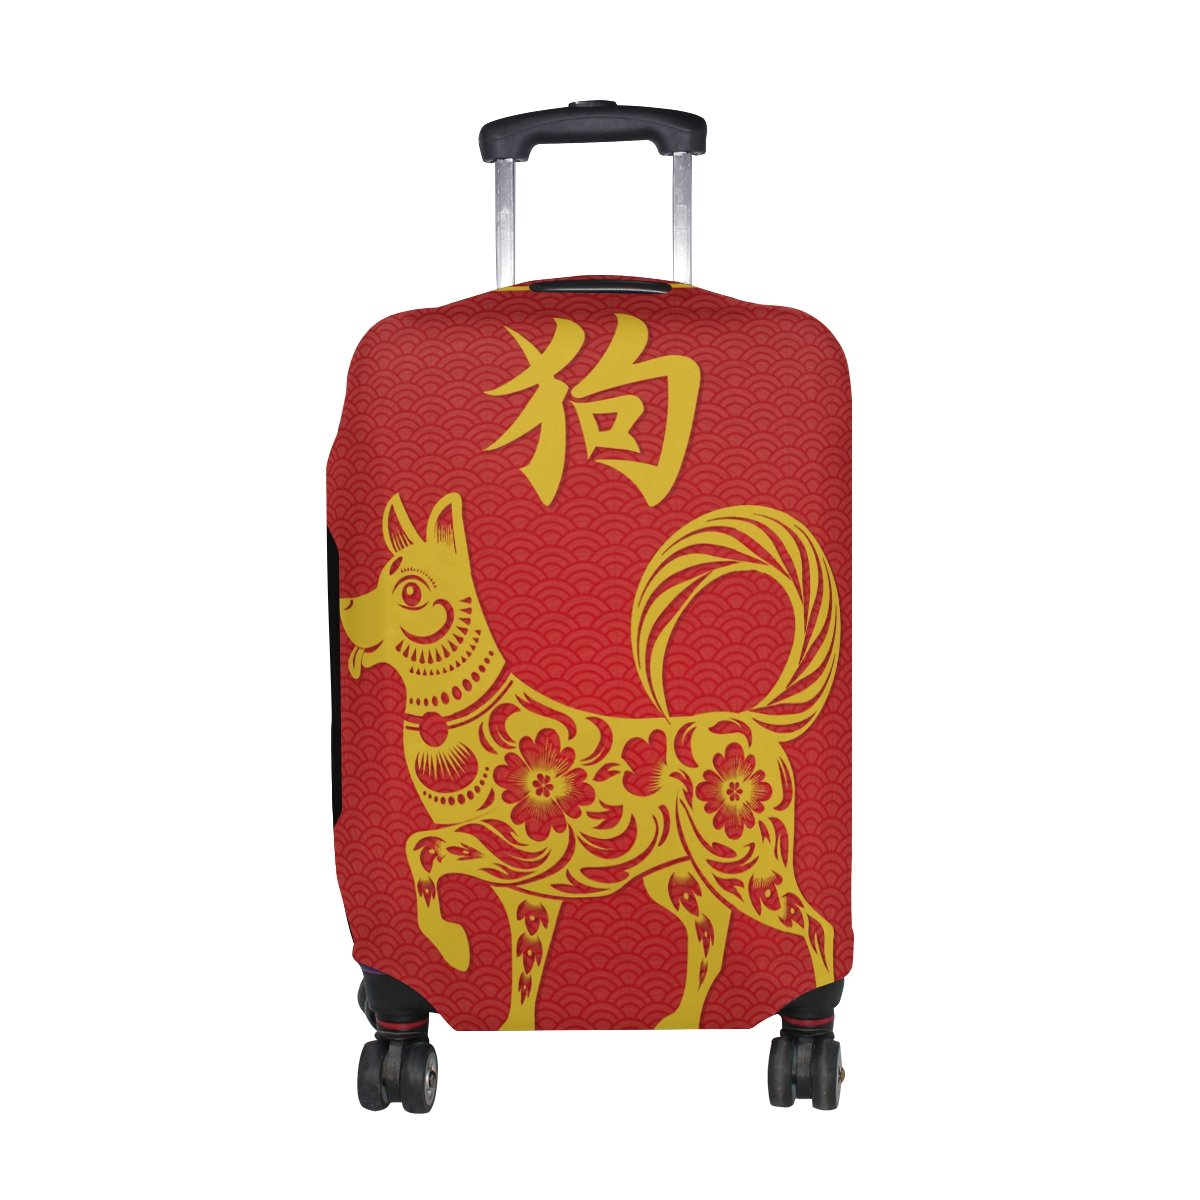 Happy Chinese New Year 2018 Of The Dog Travel Luggage Protector Baggage Suitcase Cover Fits 26-28 Inch Luggage